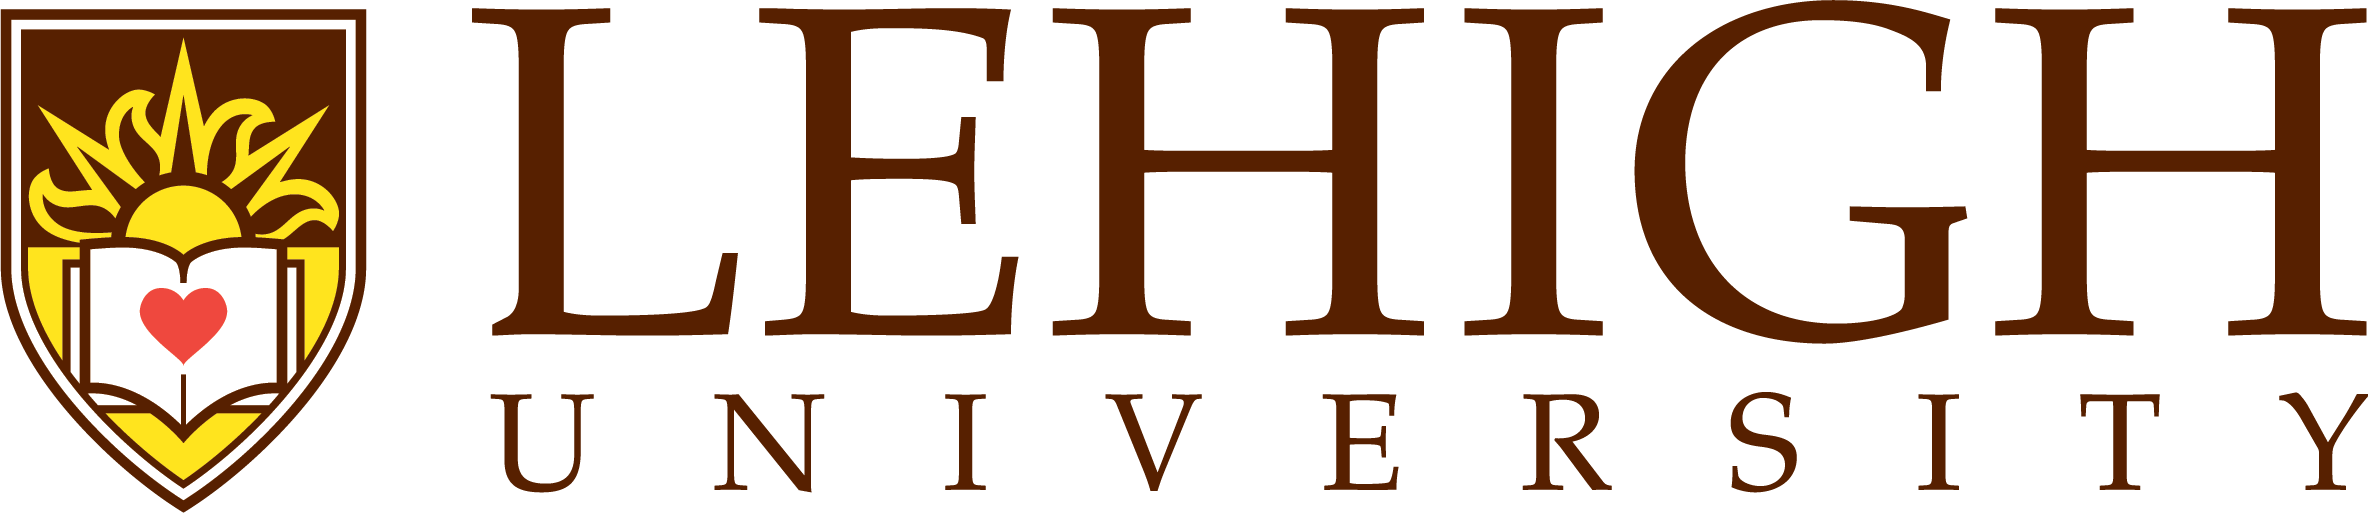 Lehigh University | USA - Universities for Supply Chain Management Degree